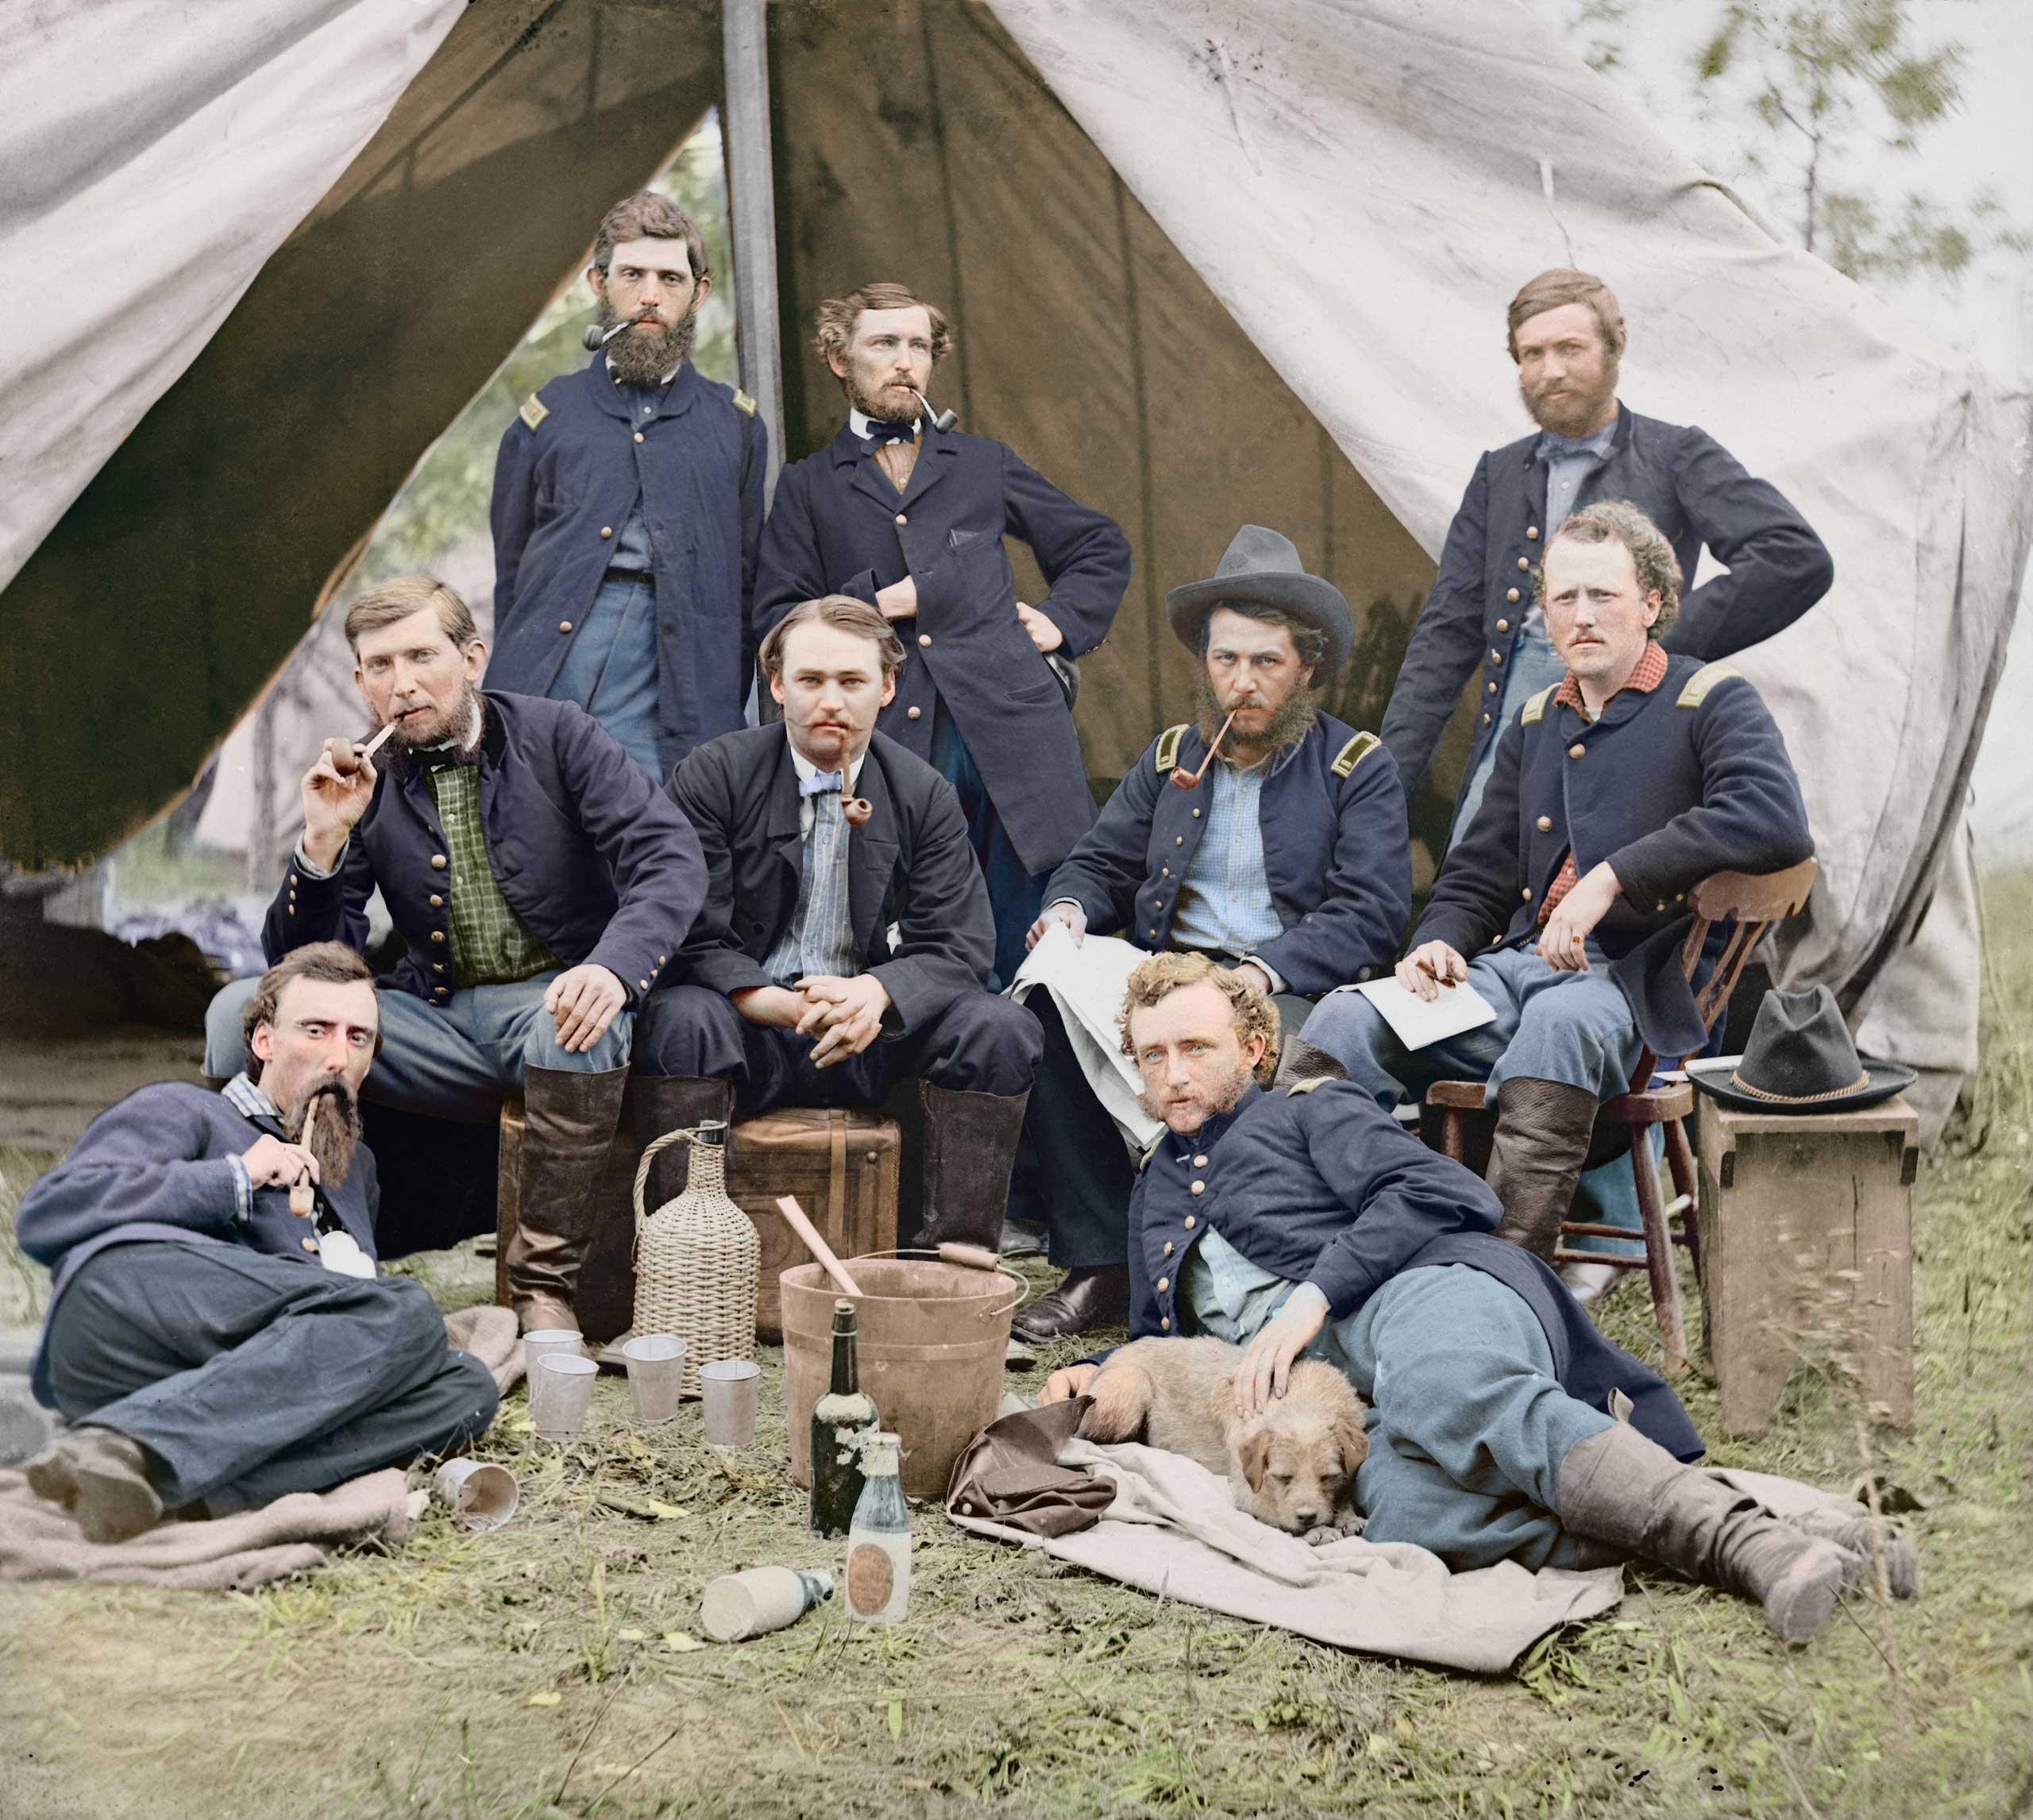 The staff of Gen. Fitz-John Porter, Lieutenant William G. Jones and George A. Custer reclining at Falmouth, Va., 1863